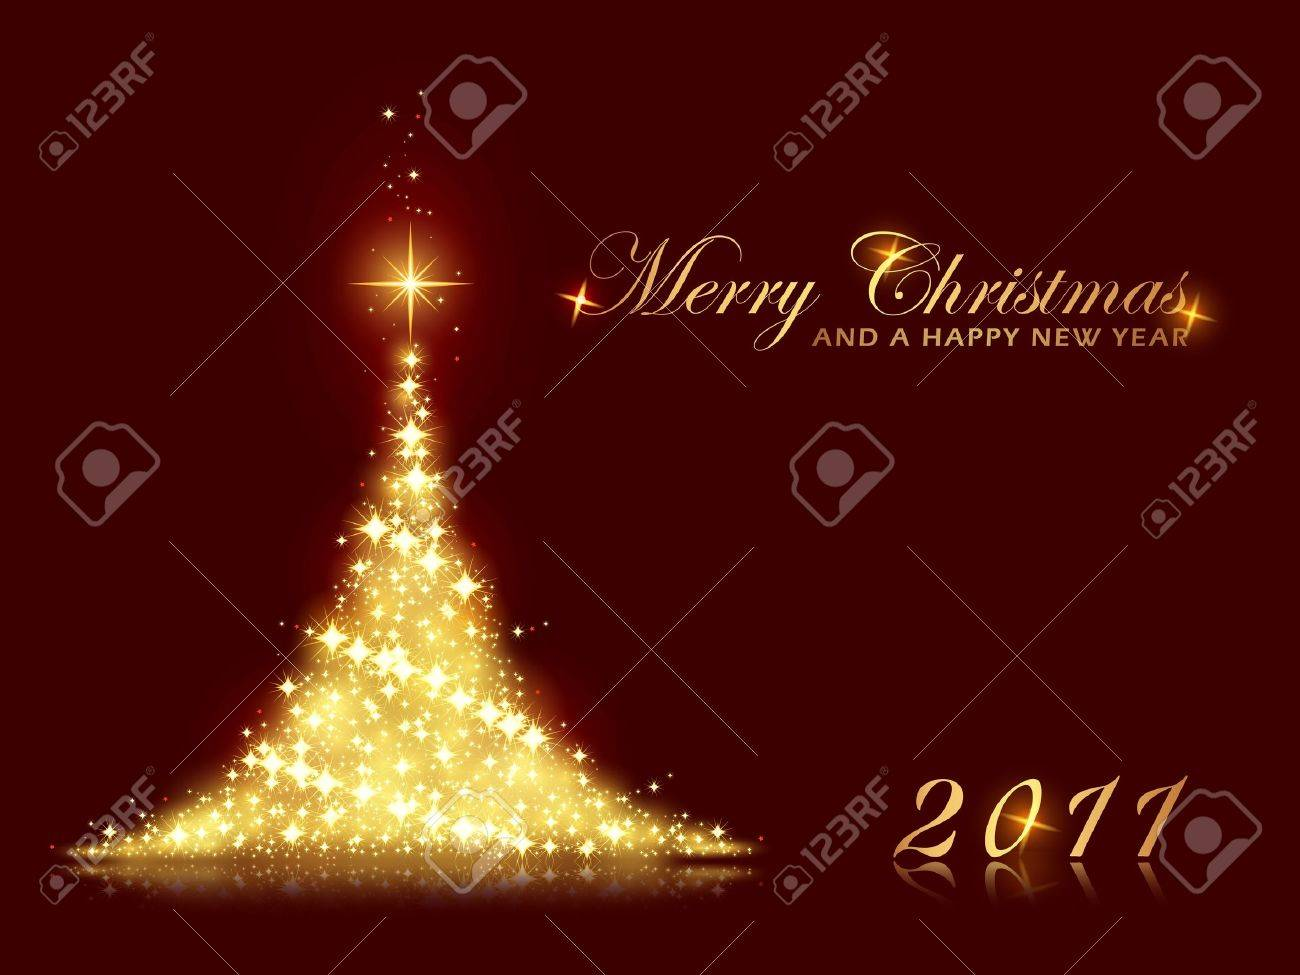 Merry Christmas And A Happy New Year Card With Shining Christmas ...